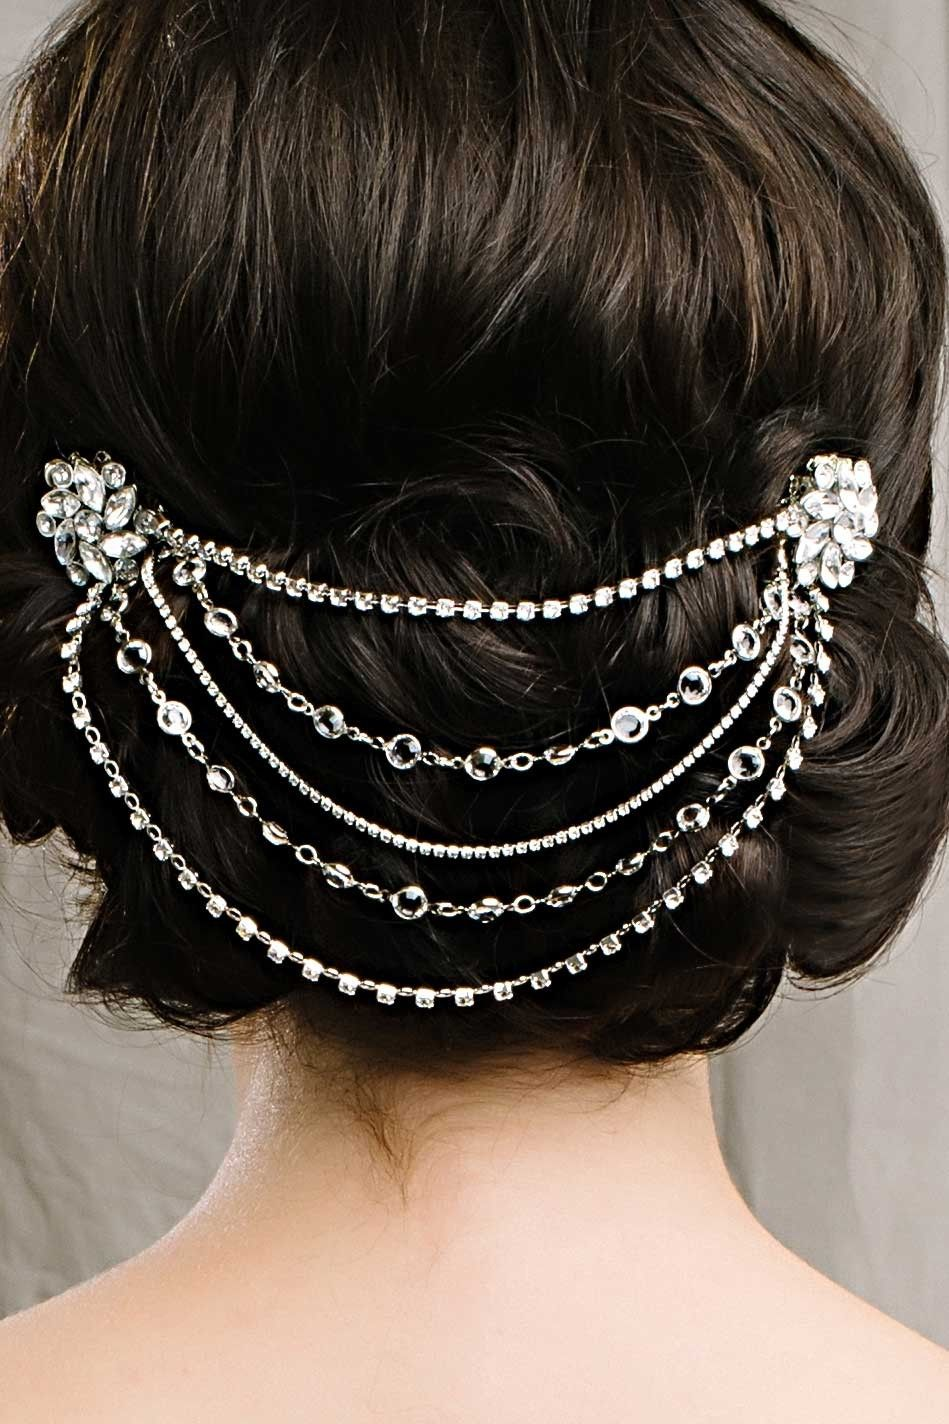 angela hair swag - inspired by fashion of the roaring '20s this